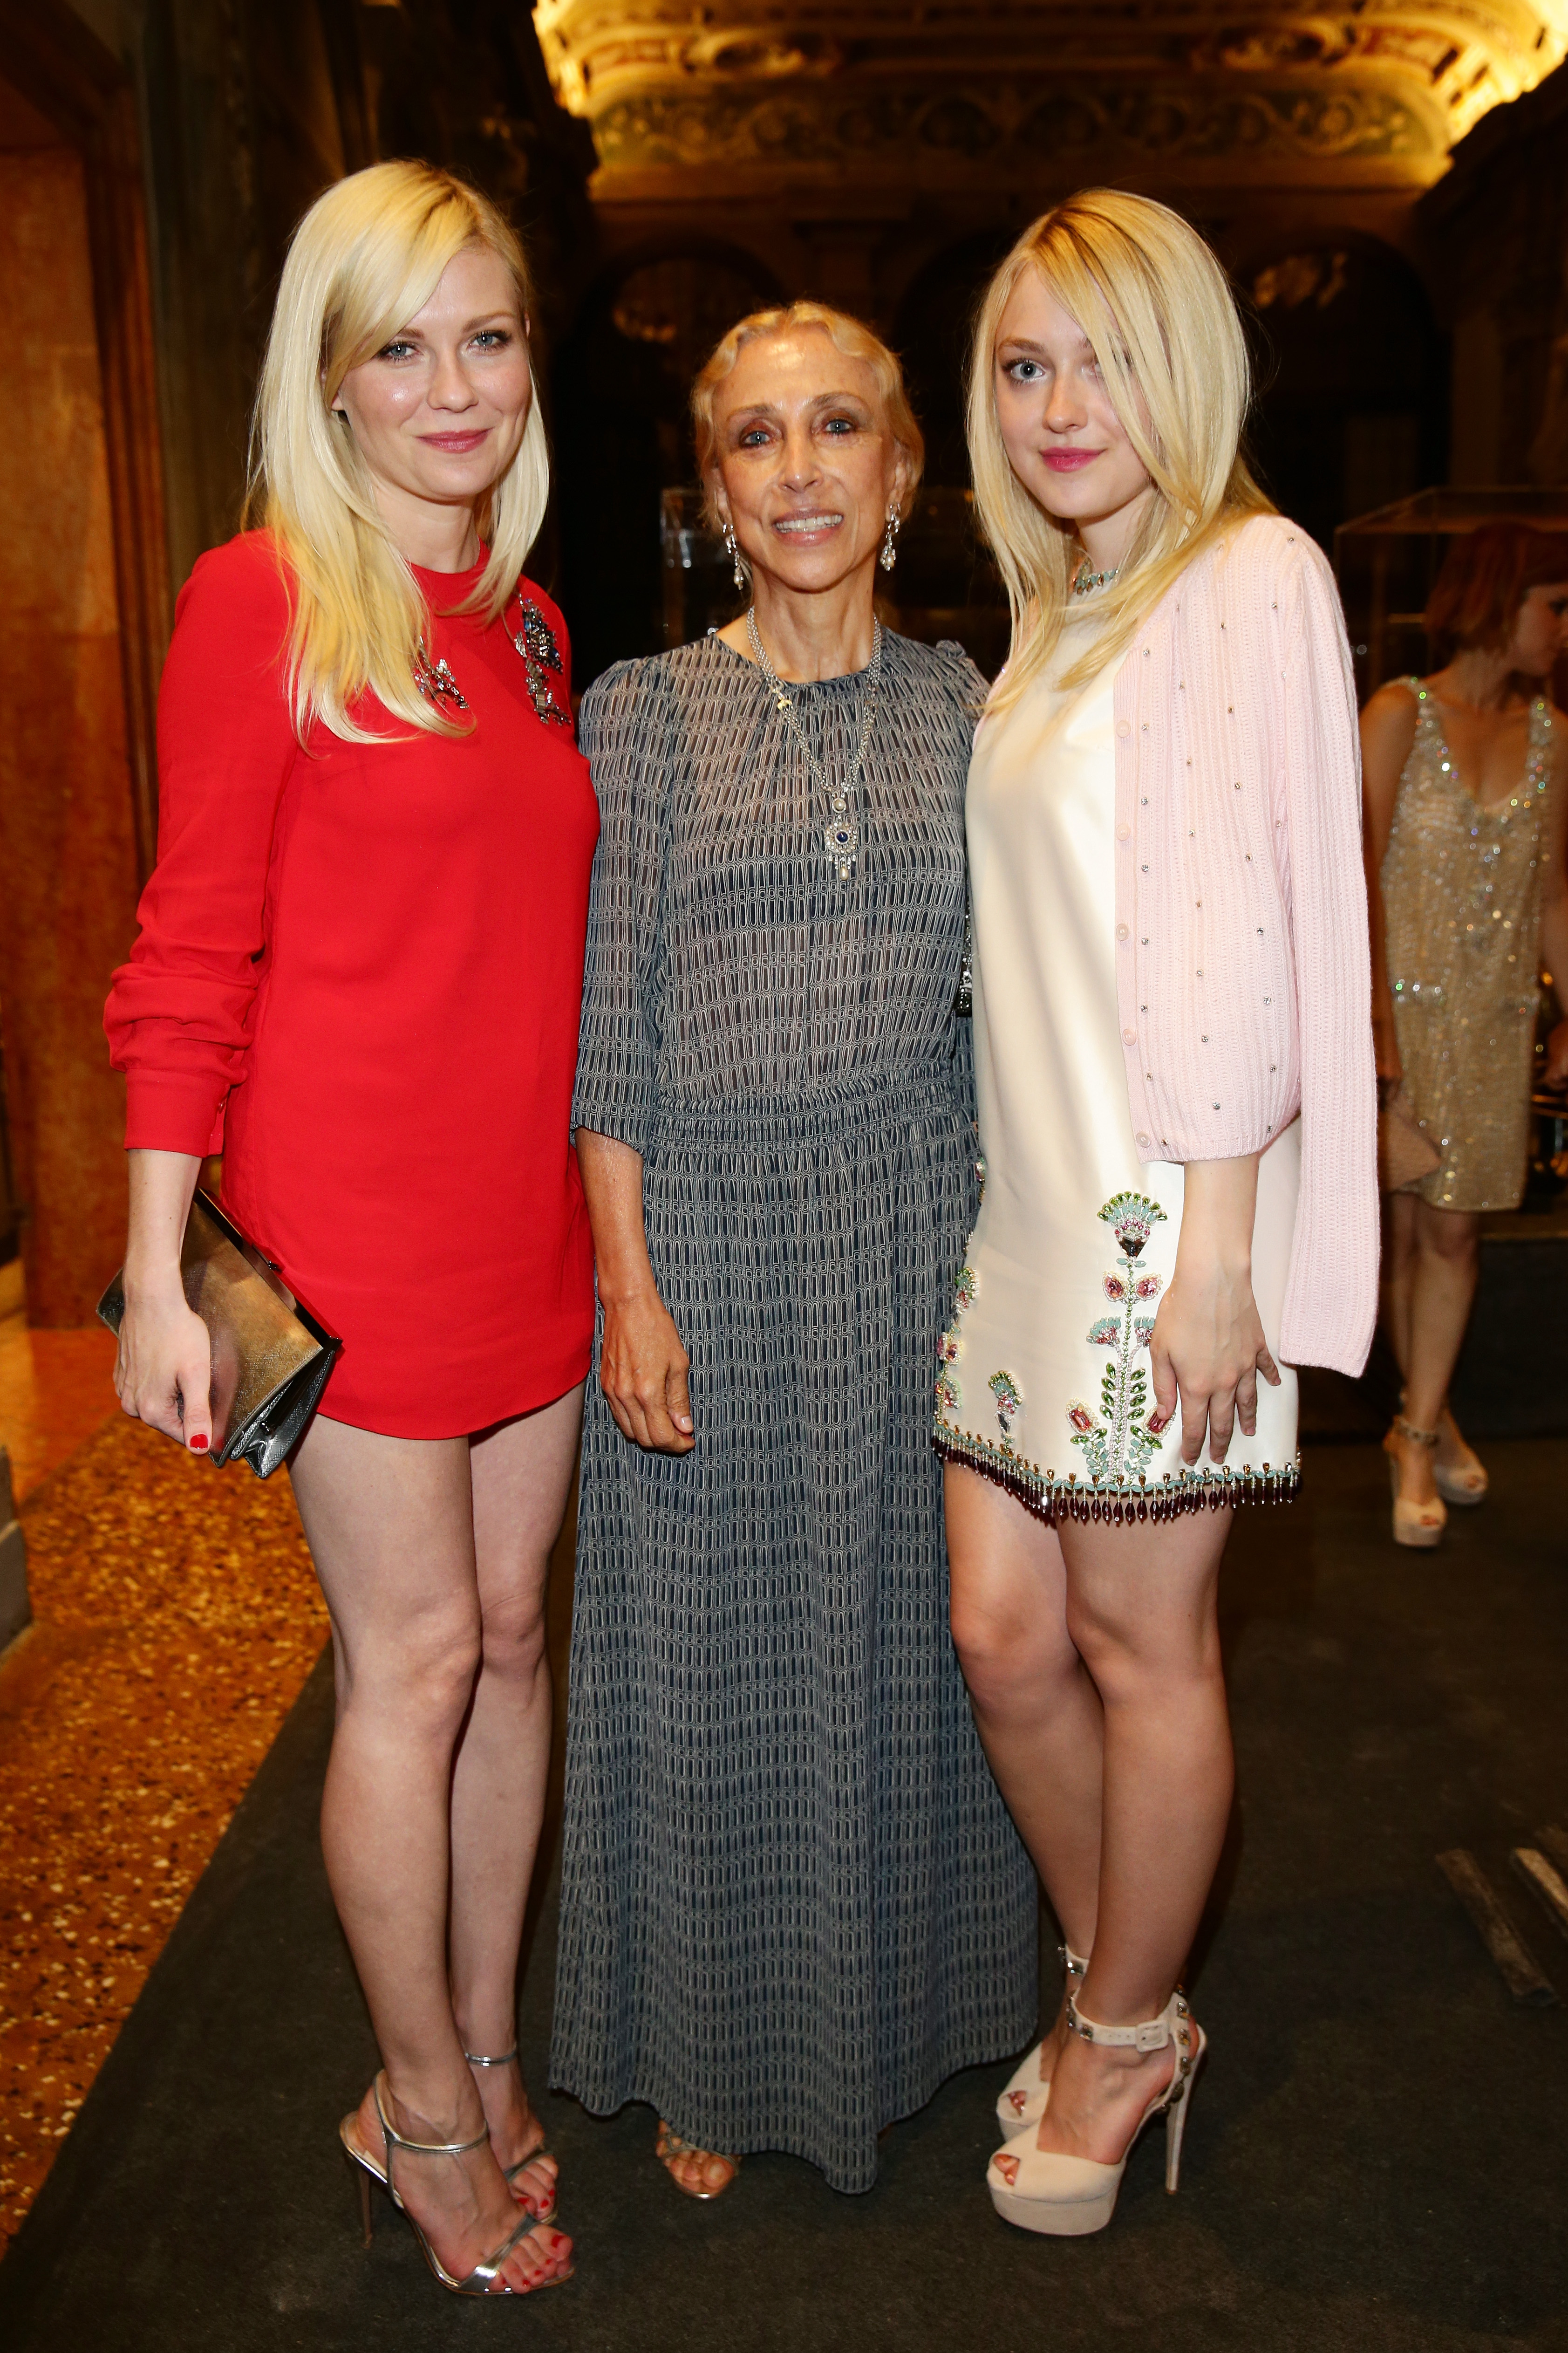 Miu Miu Women's Tales Dinner